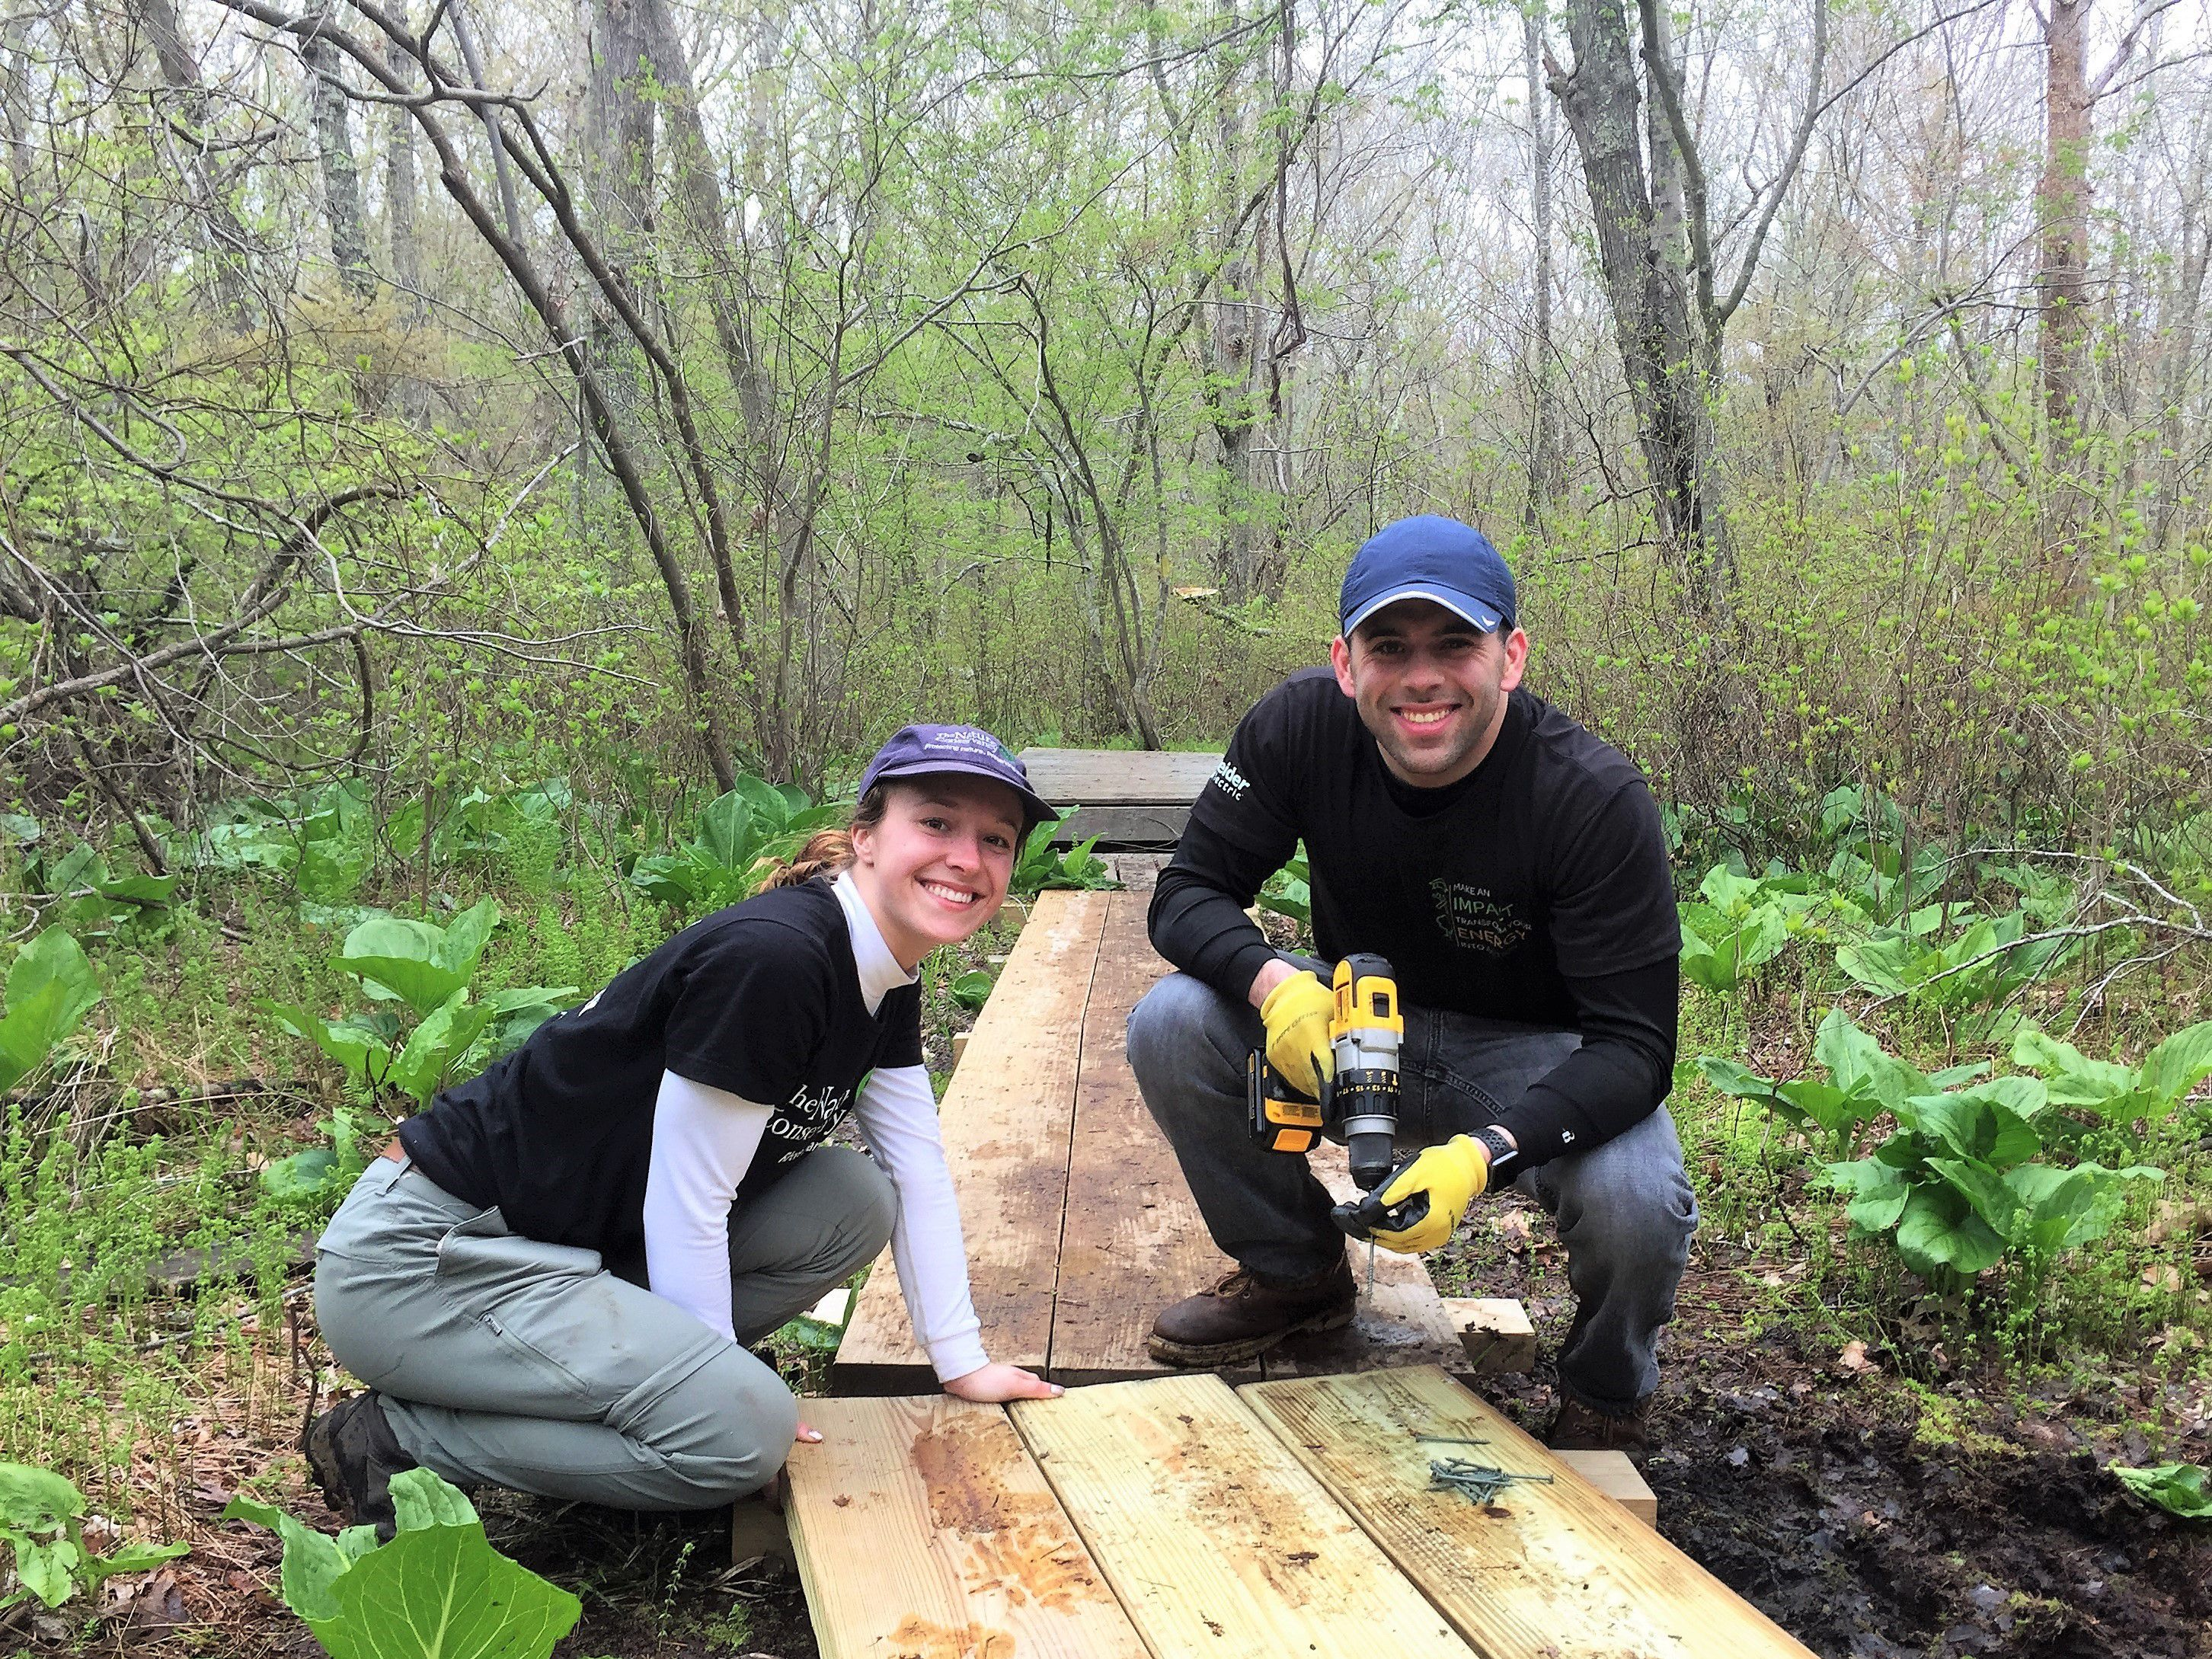 Two volunteers crouch over a newly built footbridge on a muddy wooded trail.